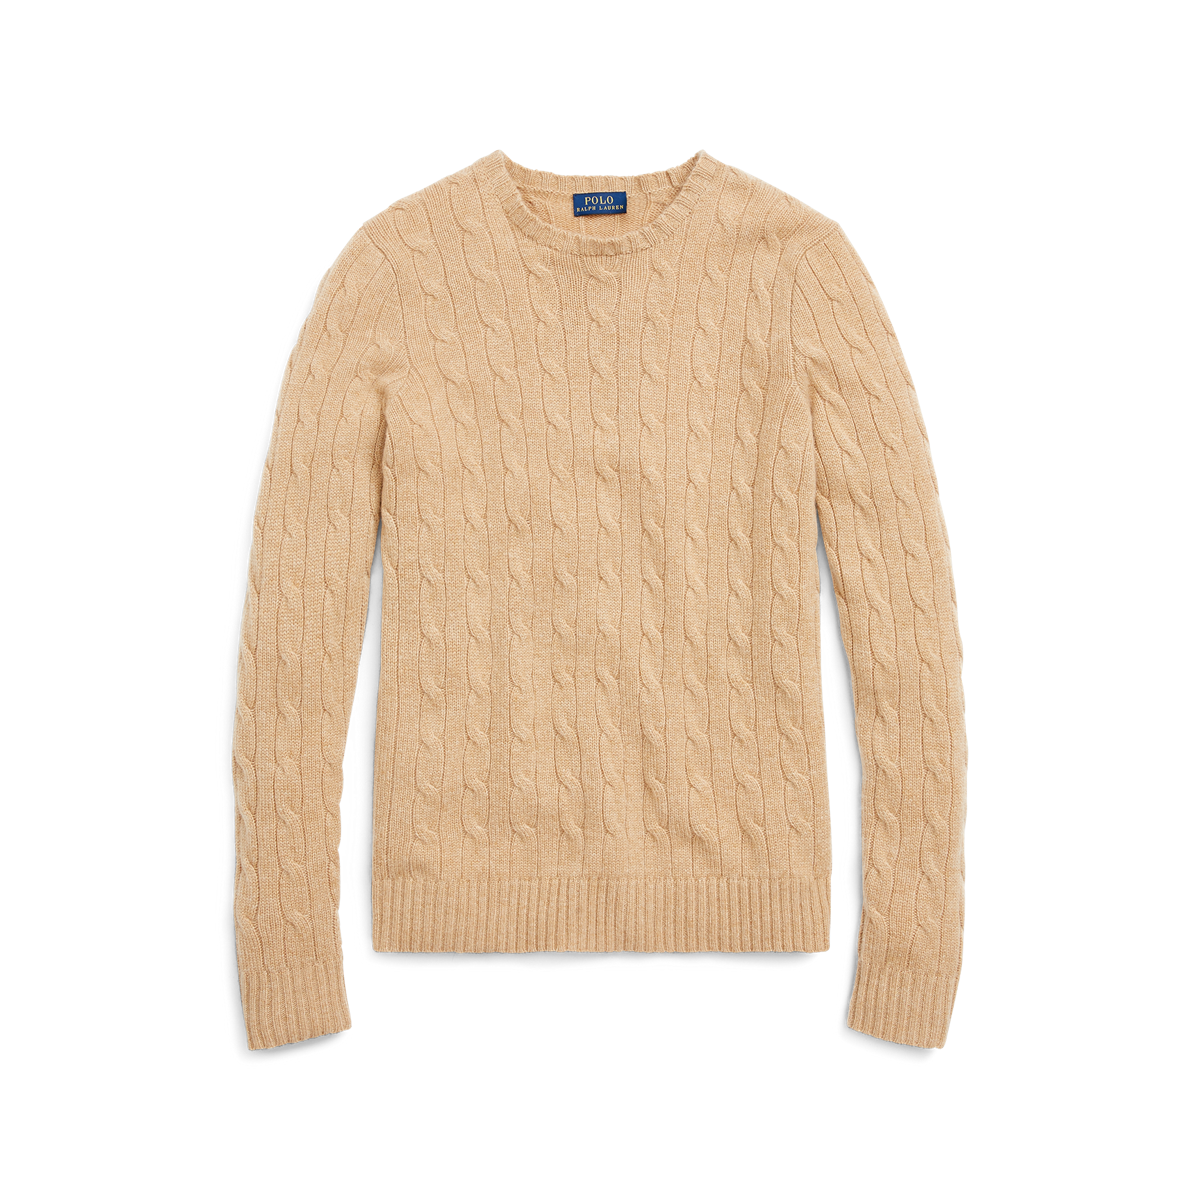 22c7a82bac21 Cable-Knit Cashmere Sweater